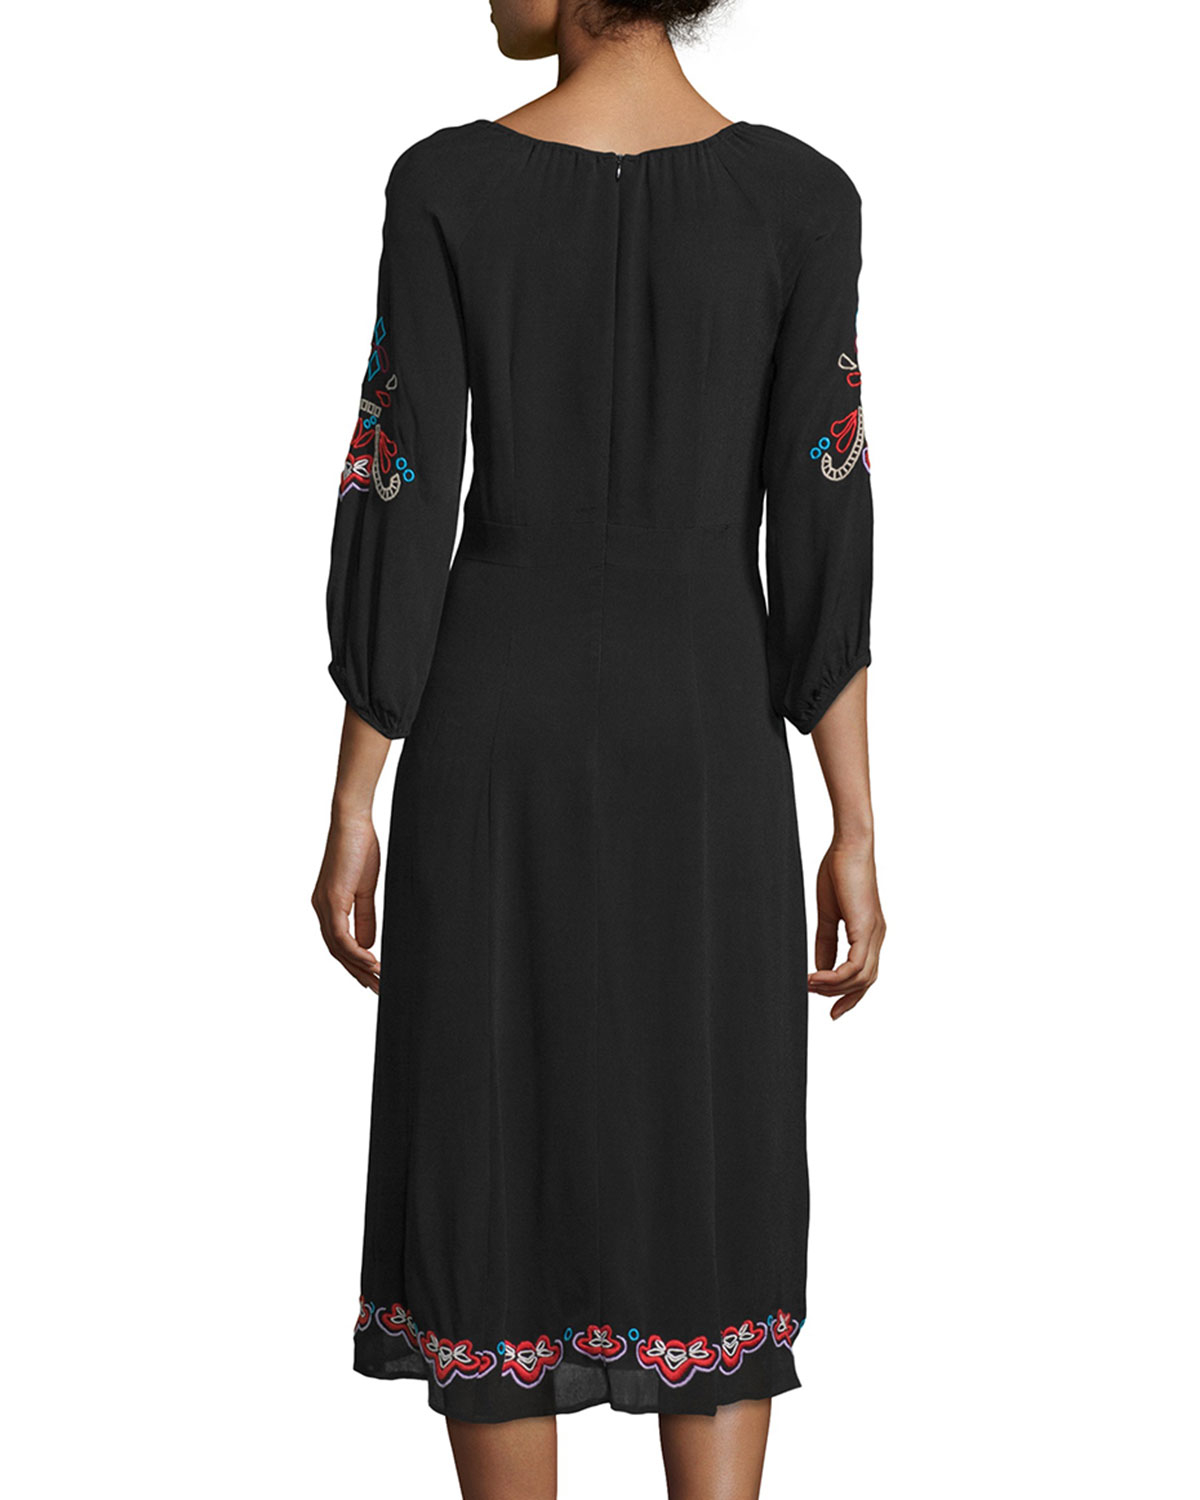 Nanette lepore 3/4-sleeve Midi Dress With Embroidery in ...